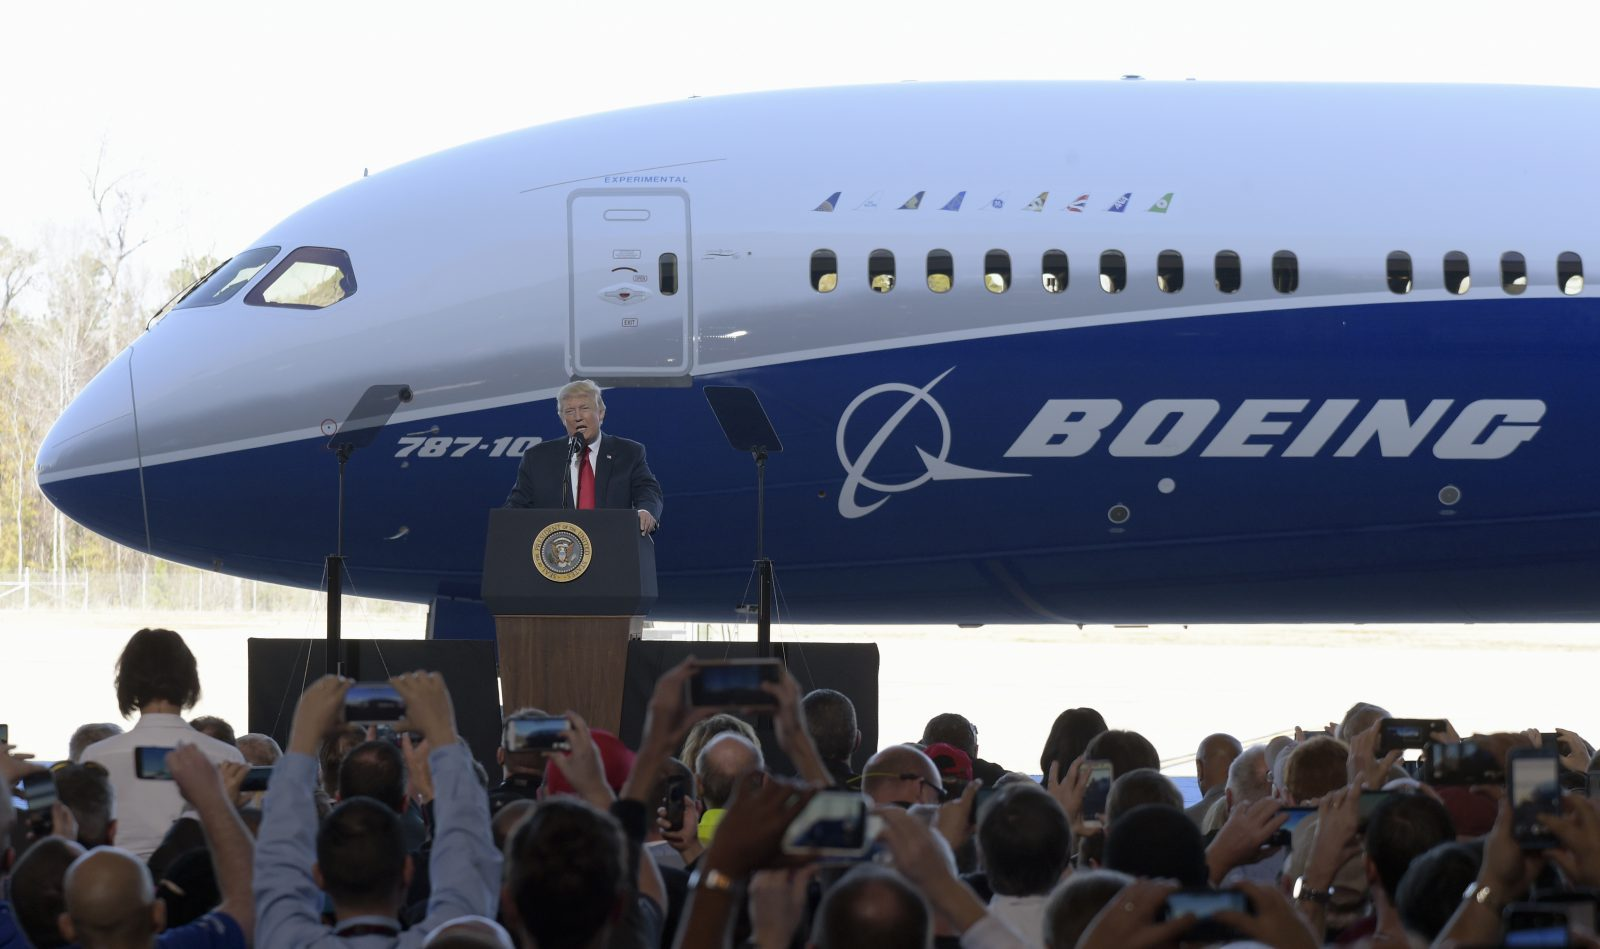 President Donald Trump speaks in front of the Boeing 787 Dreamliner while visiting the Boeing South Carolina facility in North Charleston, S.C., Friday, Feb. 17, 2017. Trump visited the plant before heading to his Mar-a-Lago estate in Palm Beach, Fla. for the weekend. (AP Photo/Susan Walsh)